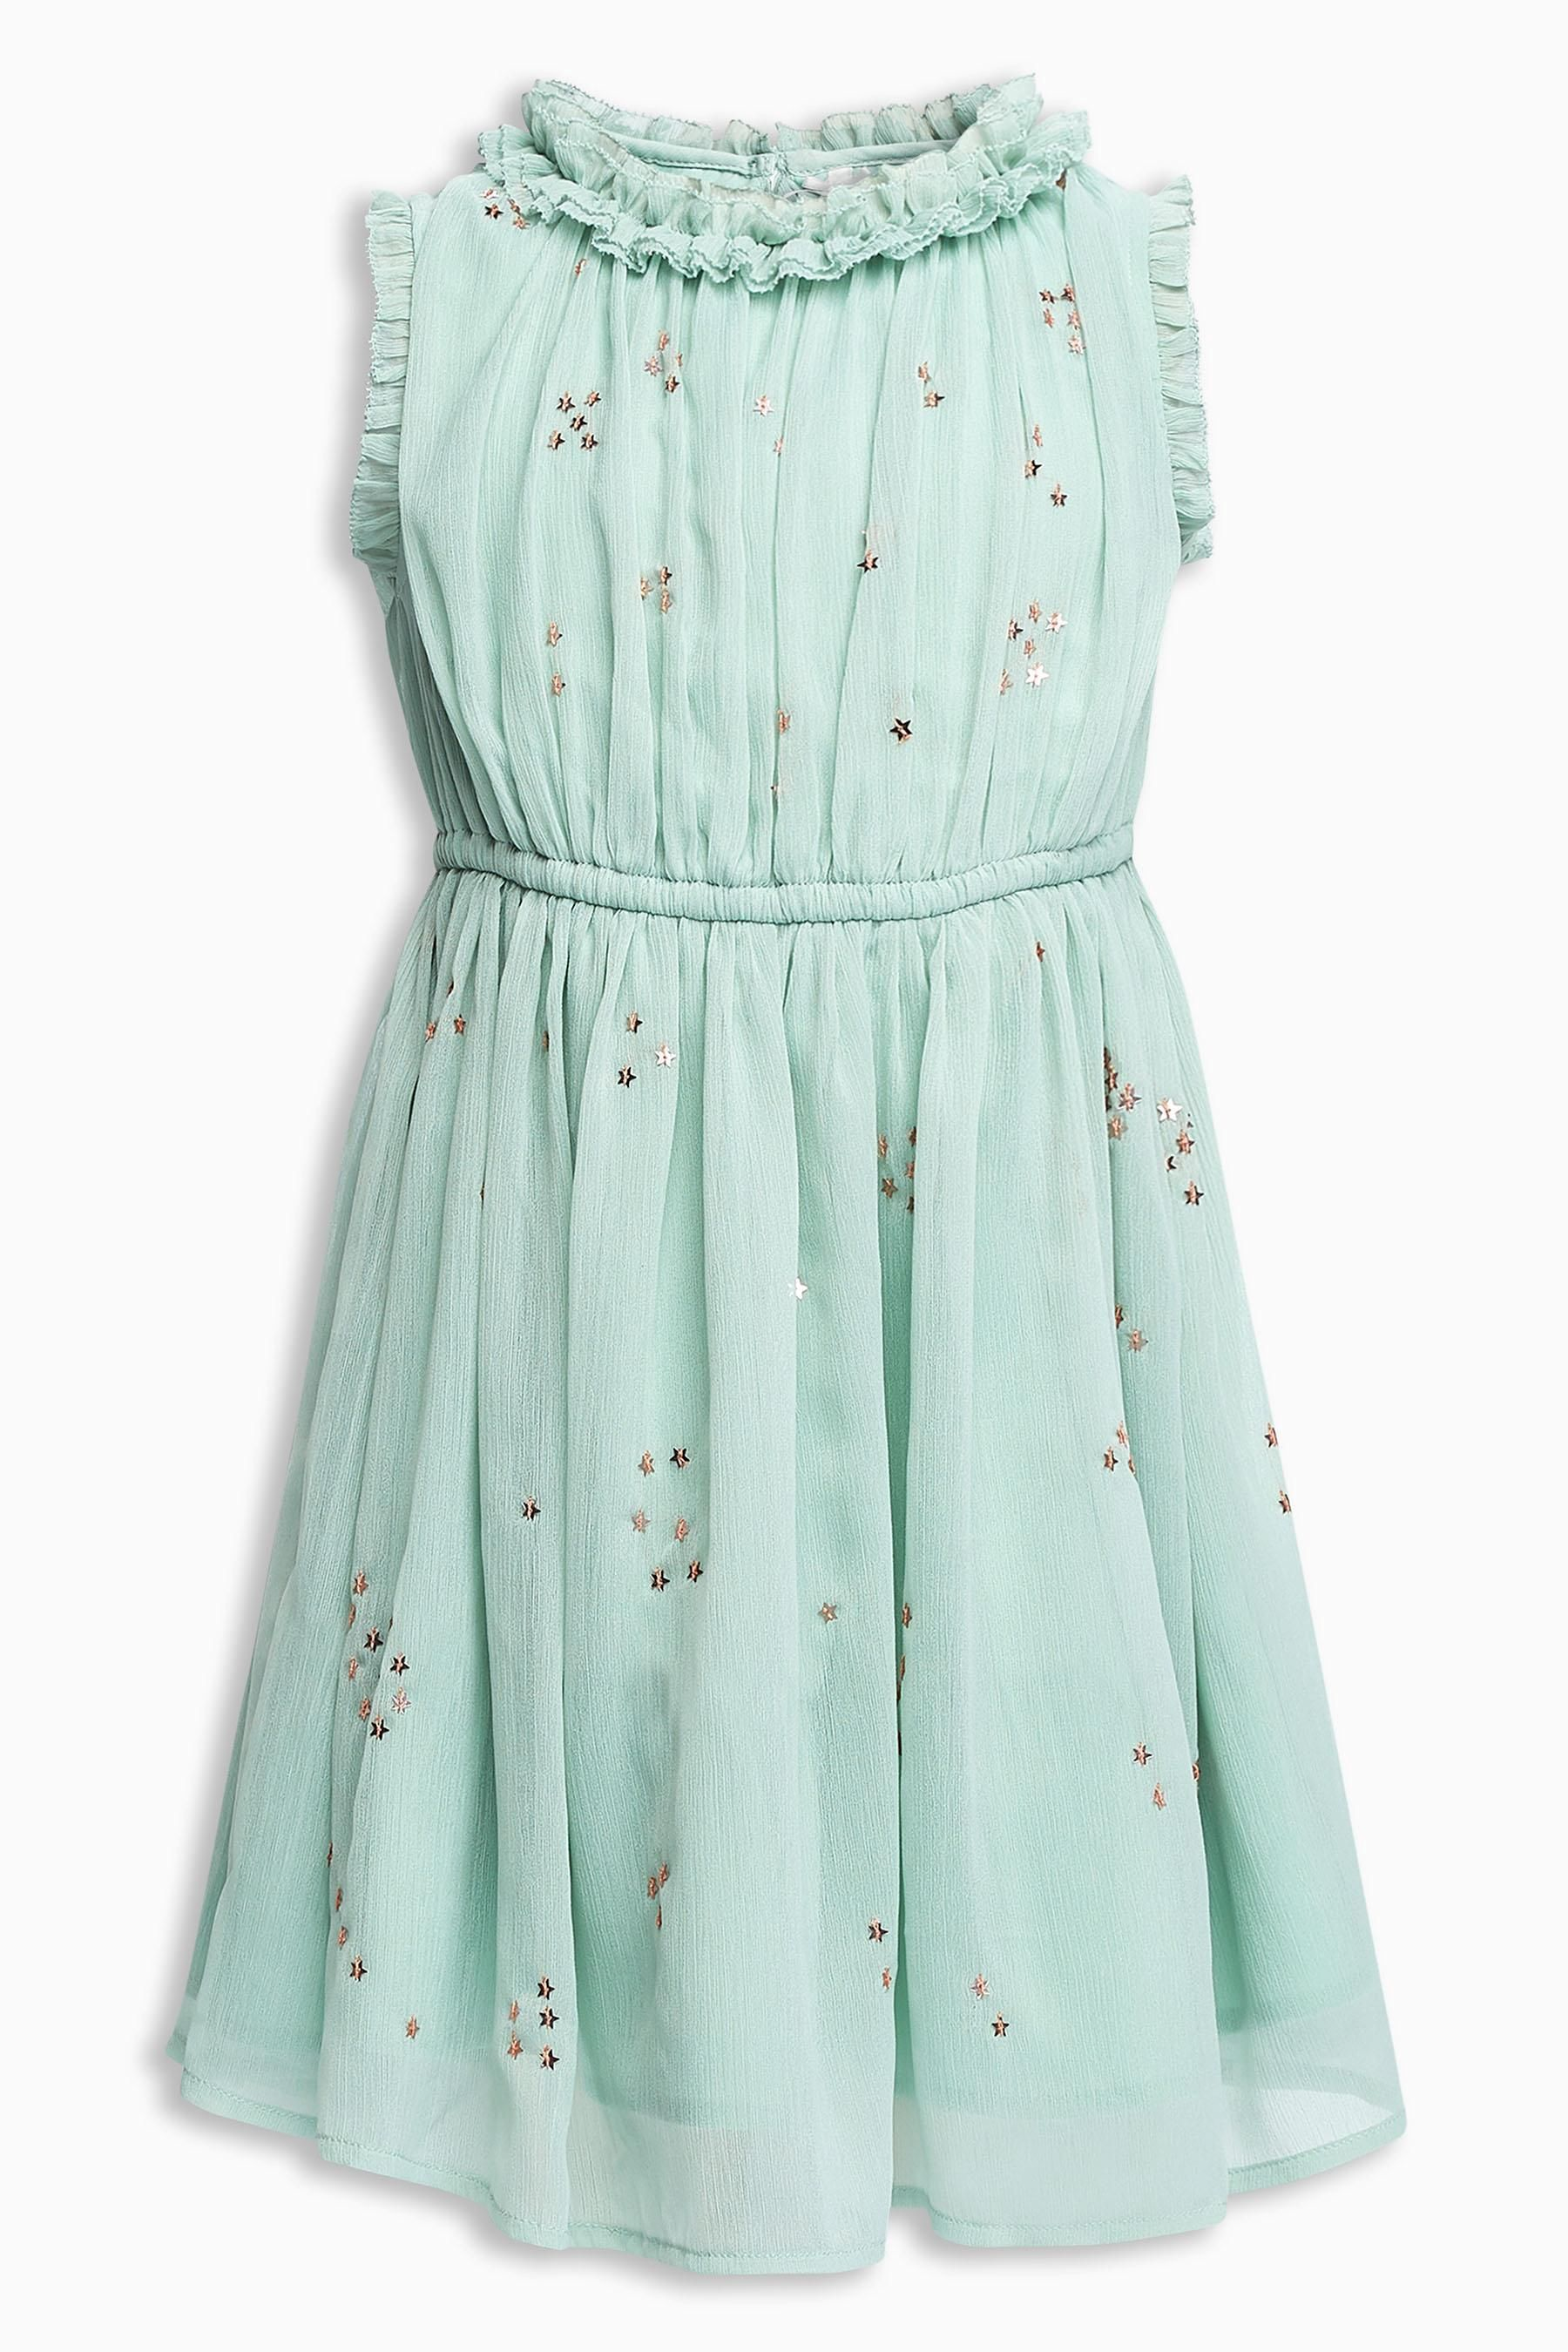 Buy Aqua Star Sequin Dress (3-16yrs) from Next USA | Moda de niñas ...